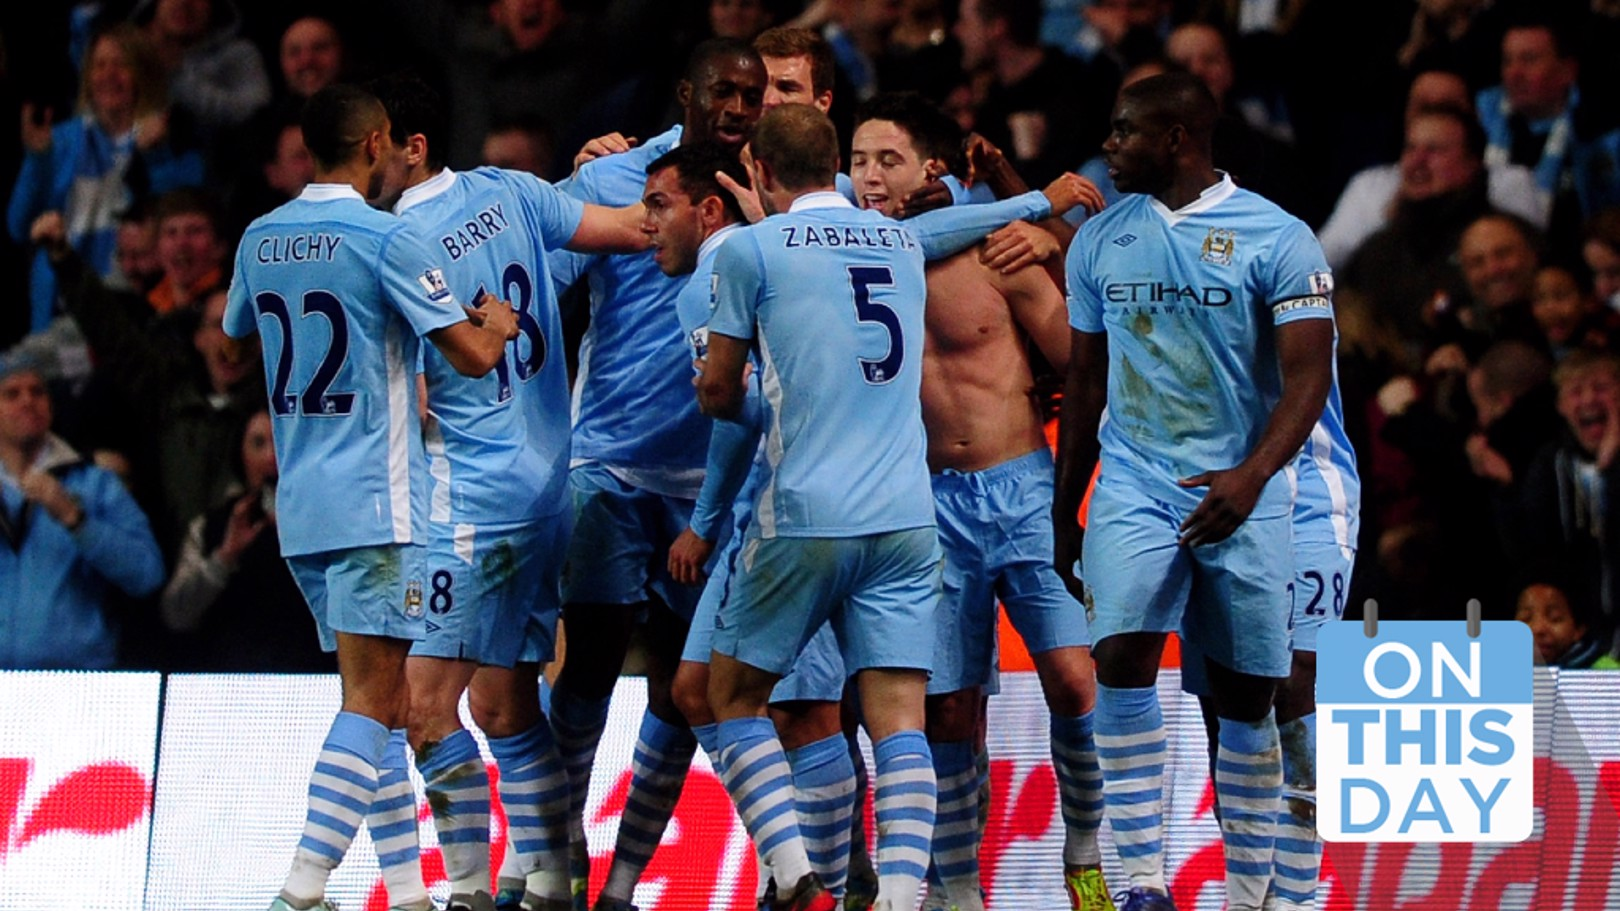 On This Day: Crucial comeback revives 2012 title dream